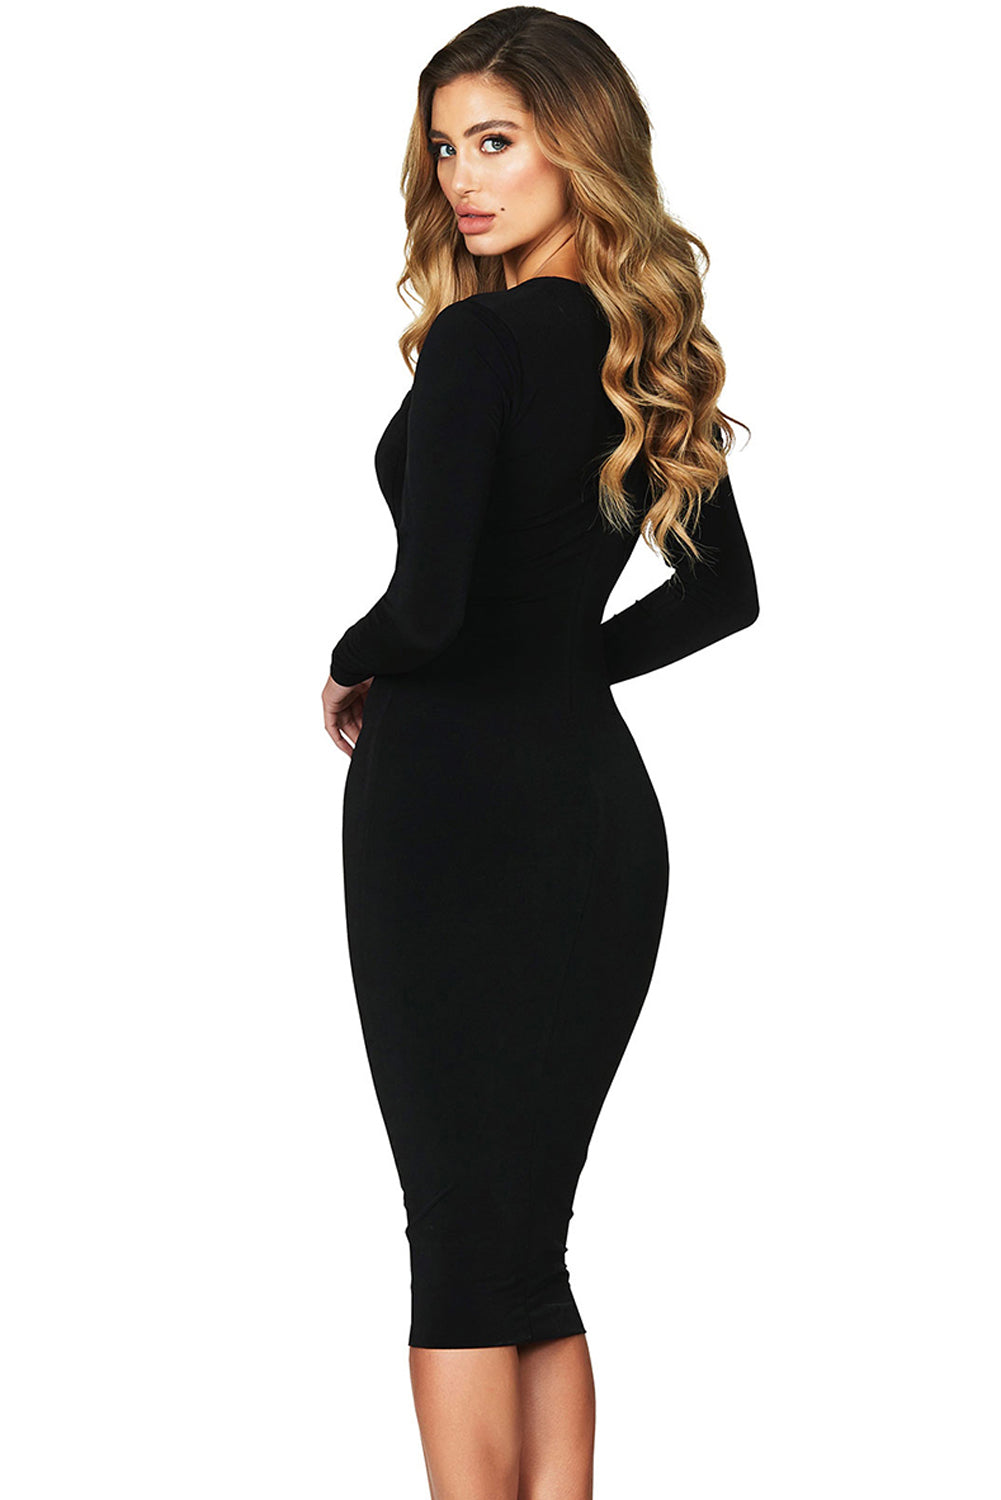 Black Sexy Flirt Long Sleeve Midi Dress LAVELIQ d82262dee